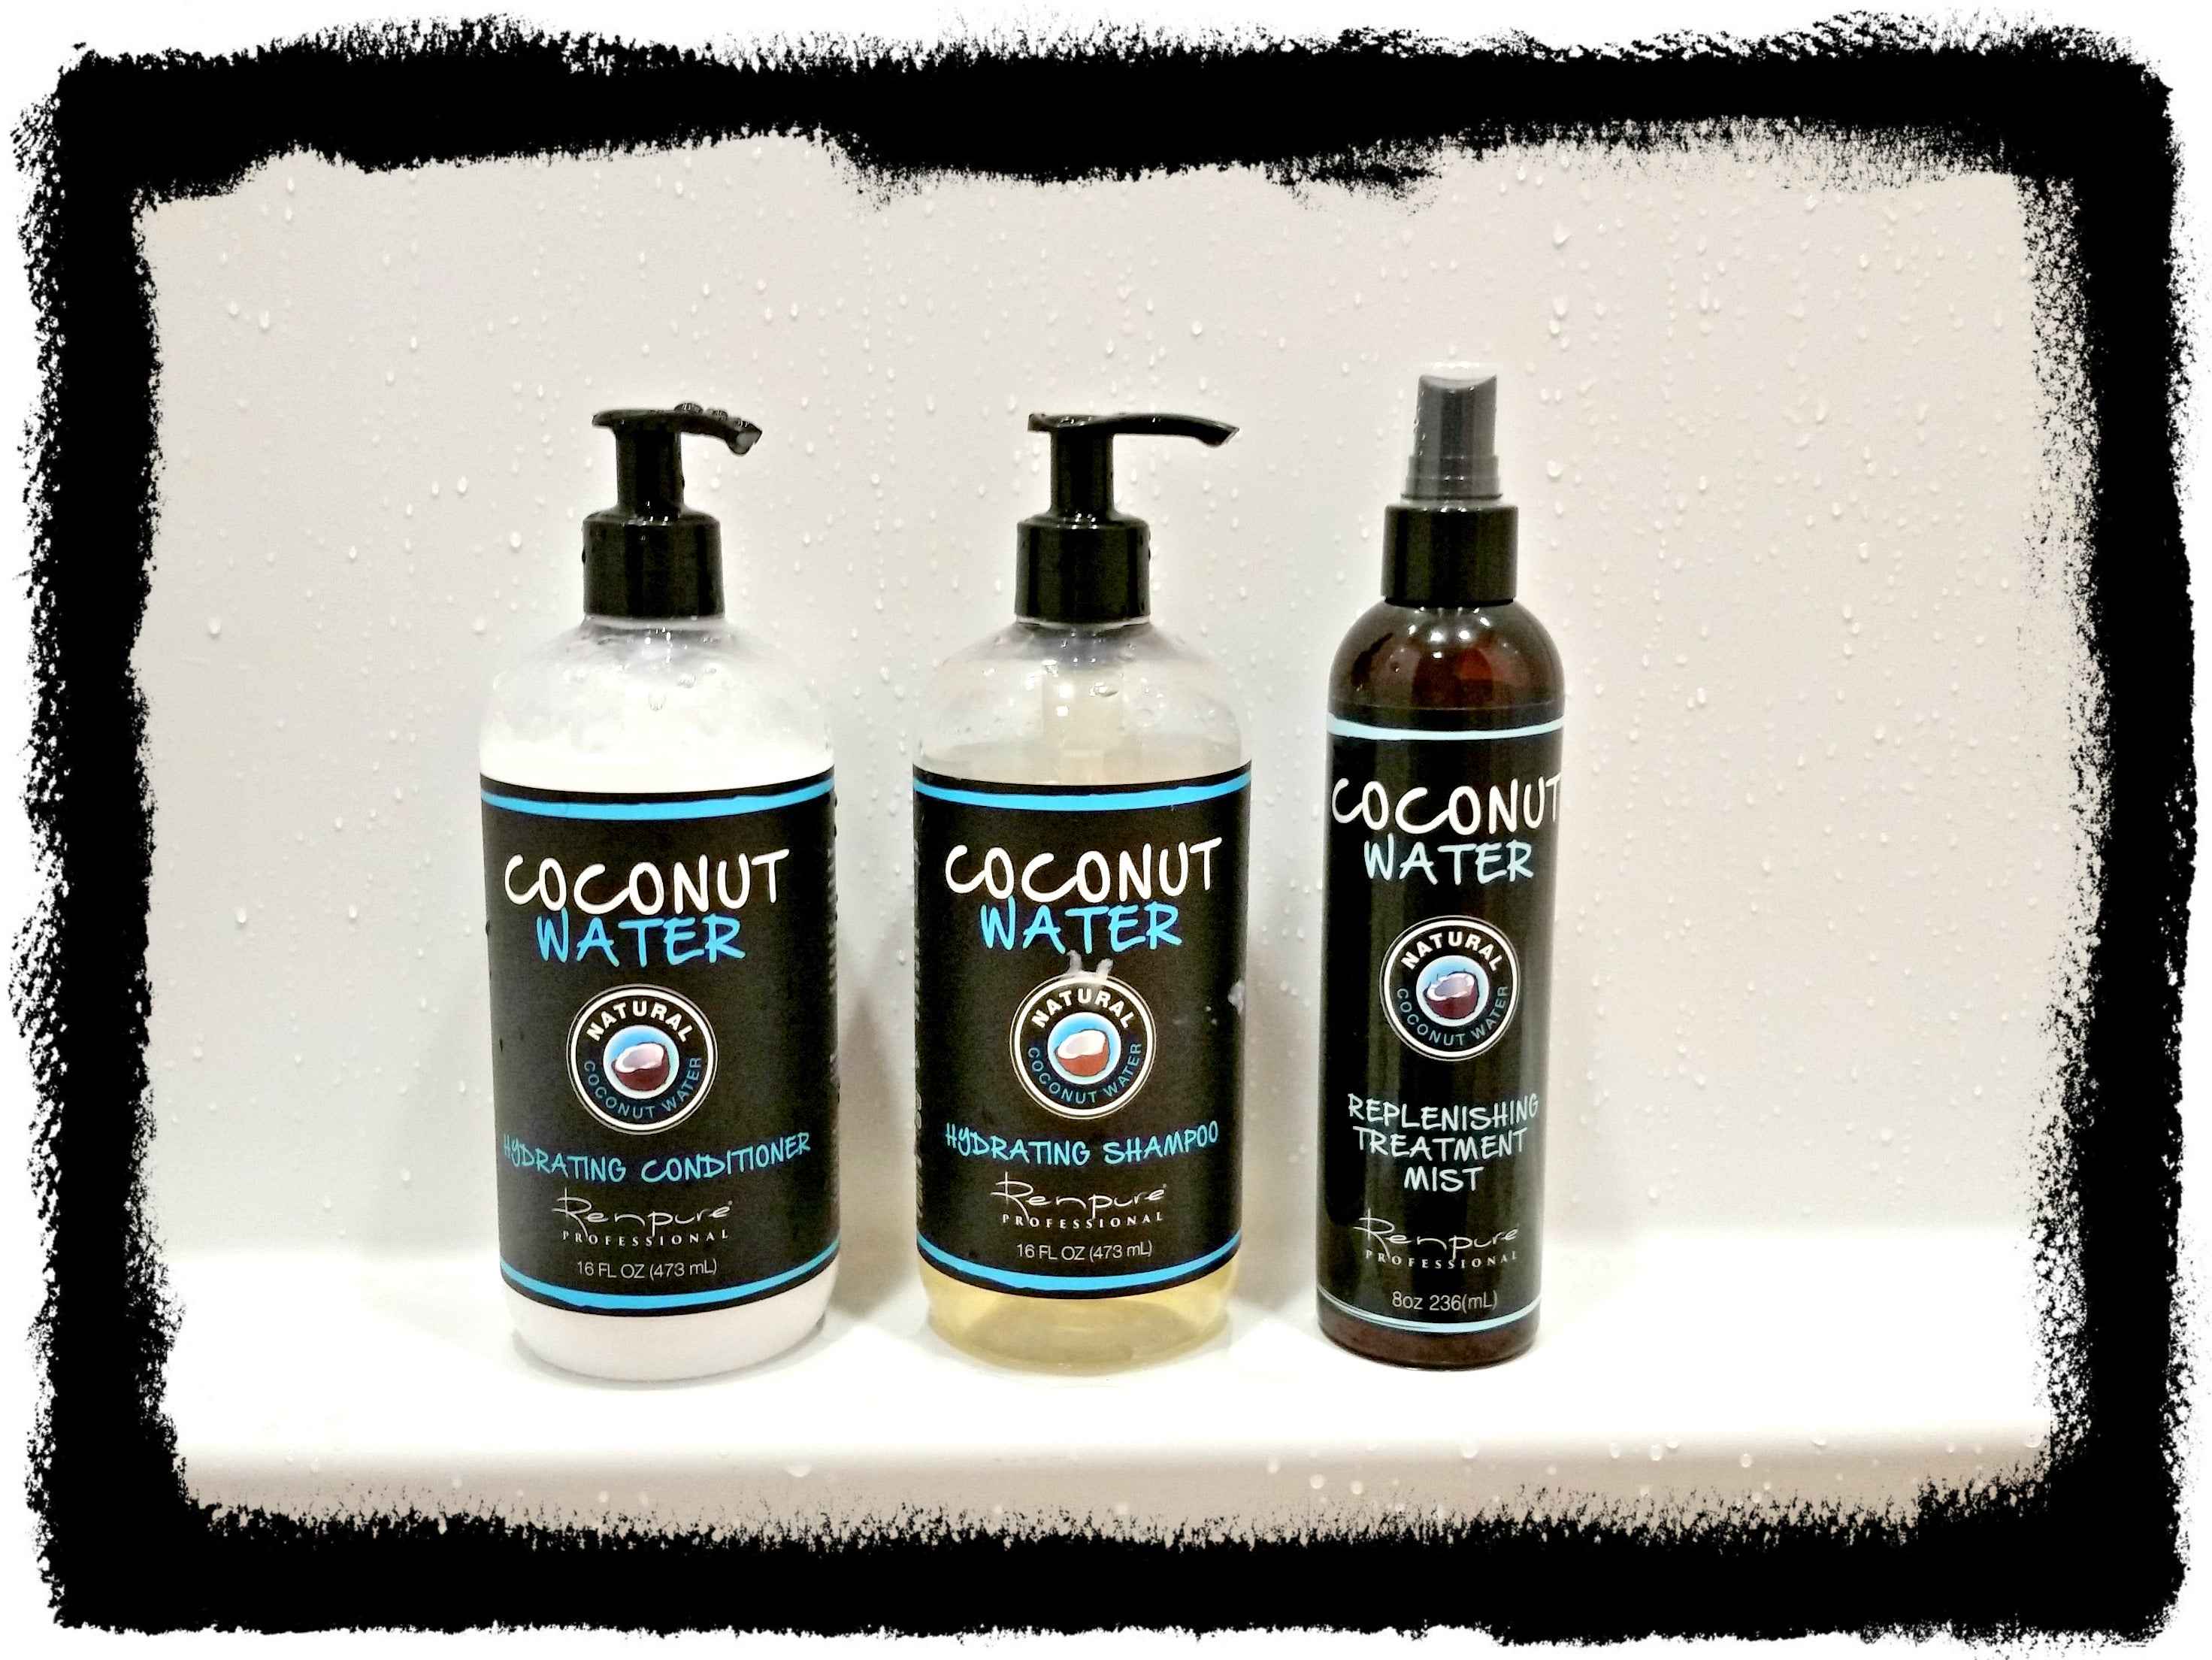 Coconut Water hair care review via @agirlsgottaspa #coconutwater #haircare